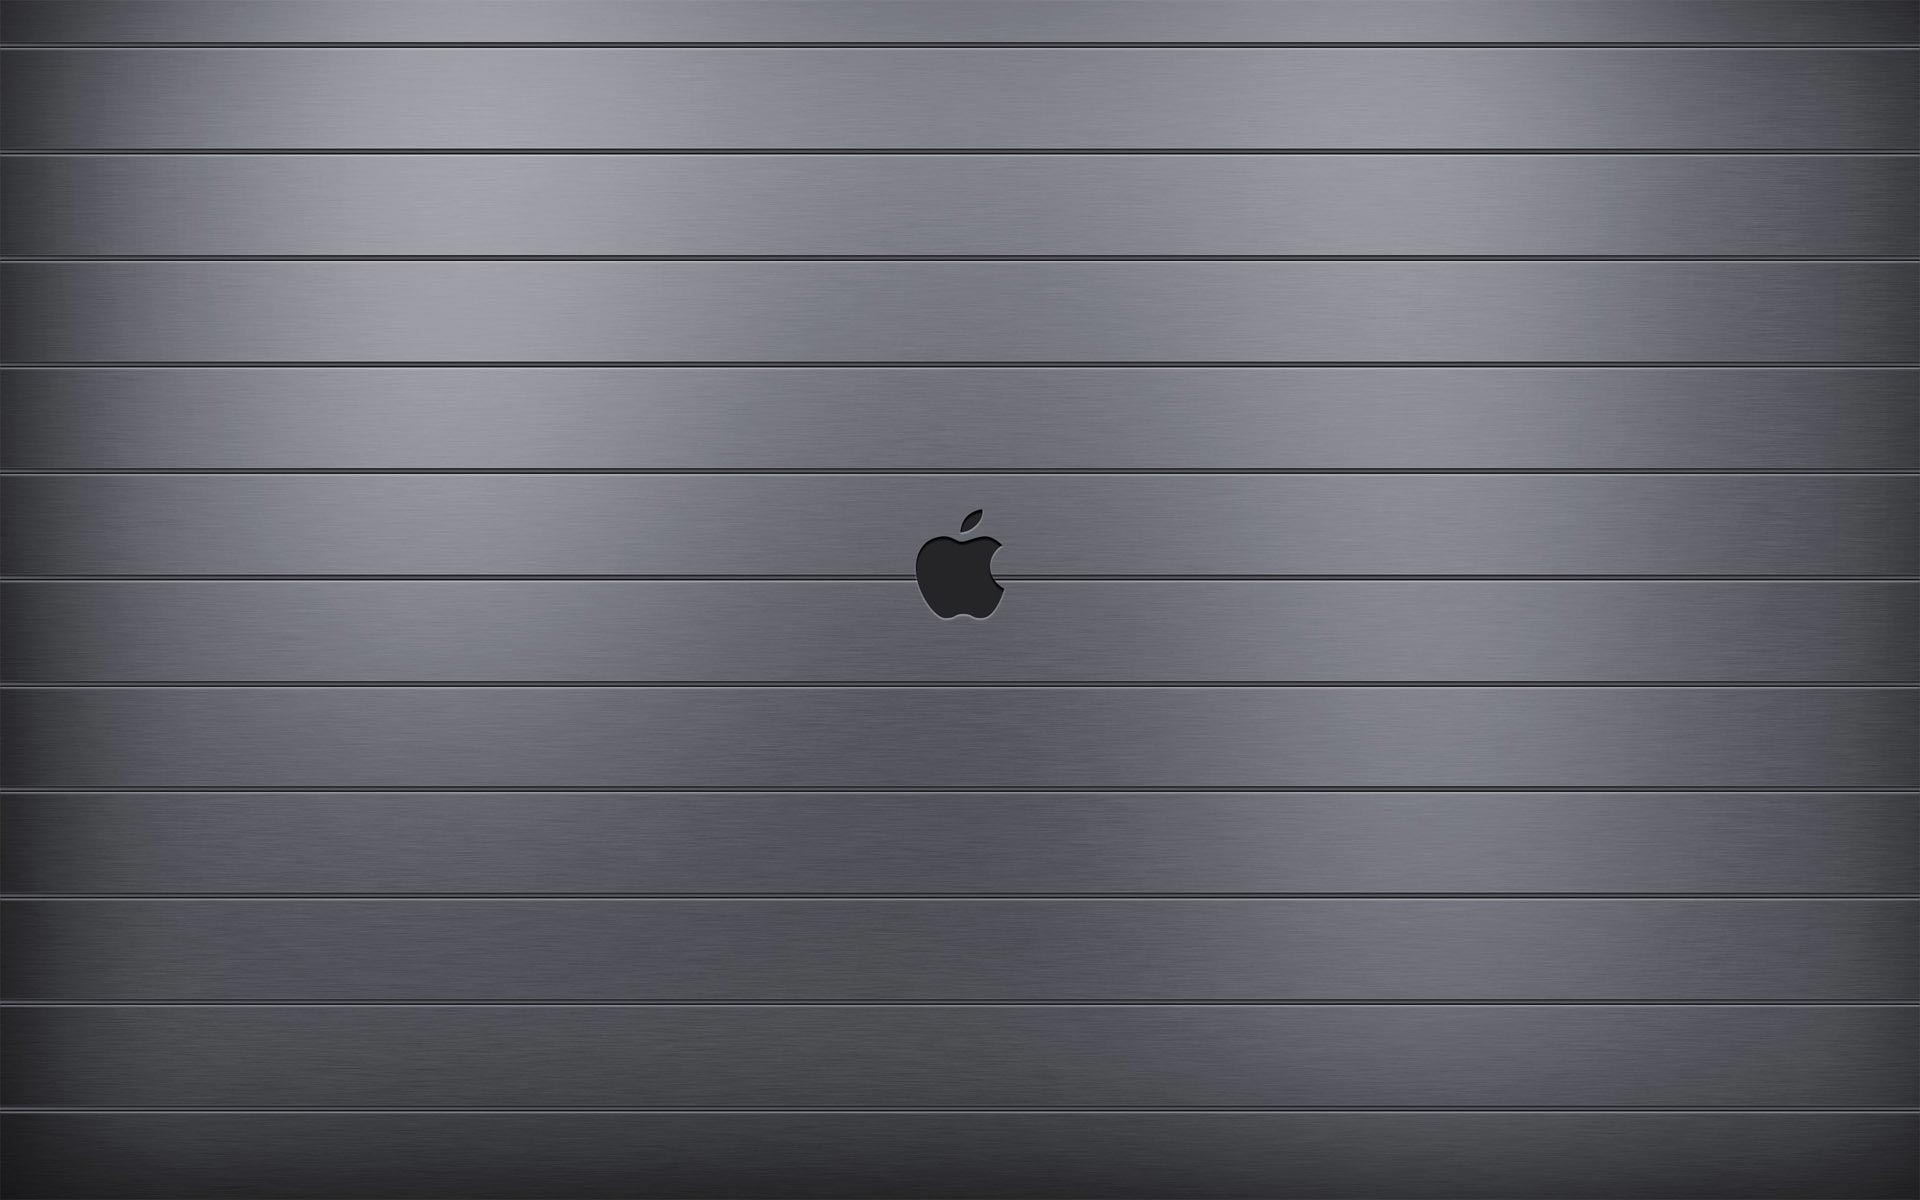 10 Most Popular Macbook Pro Wallpaper Size Full Hd 1920 1080 For Pc